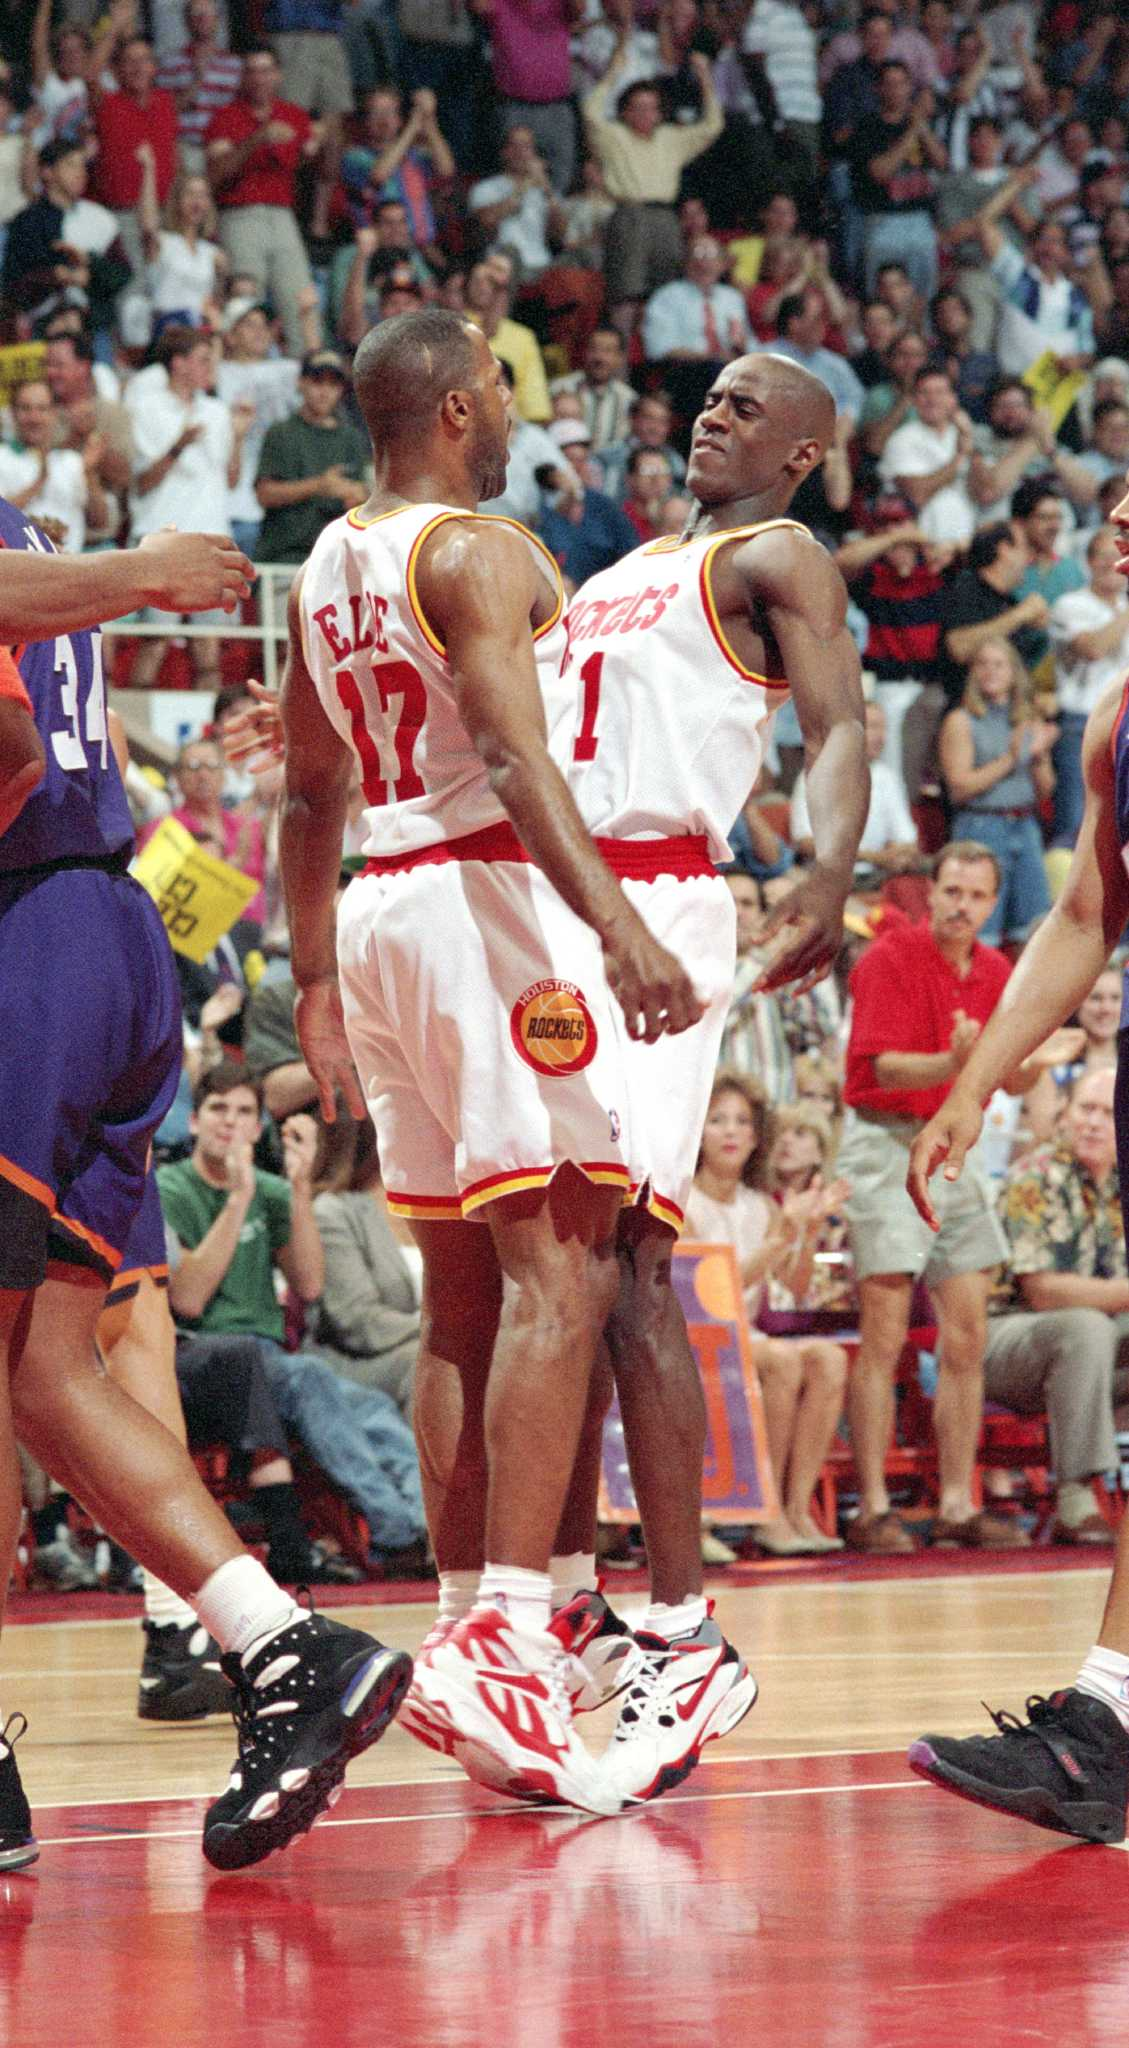 Maxwell s big shots ring true 20 years after Rockets title